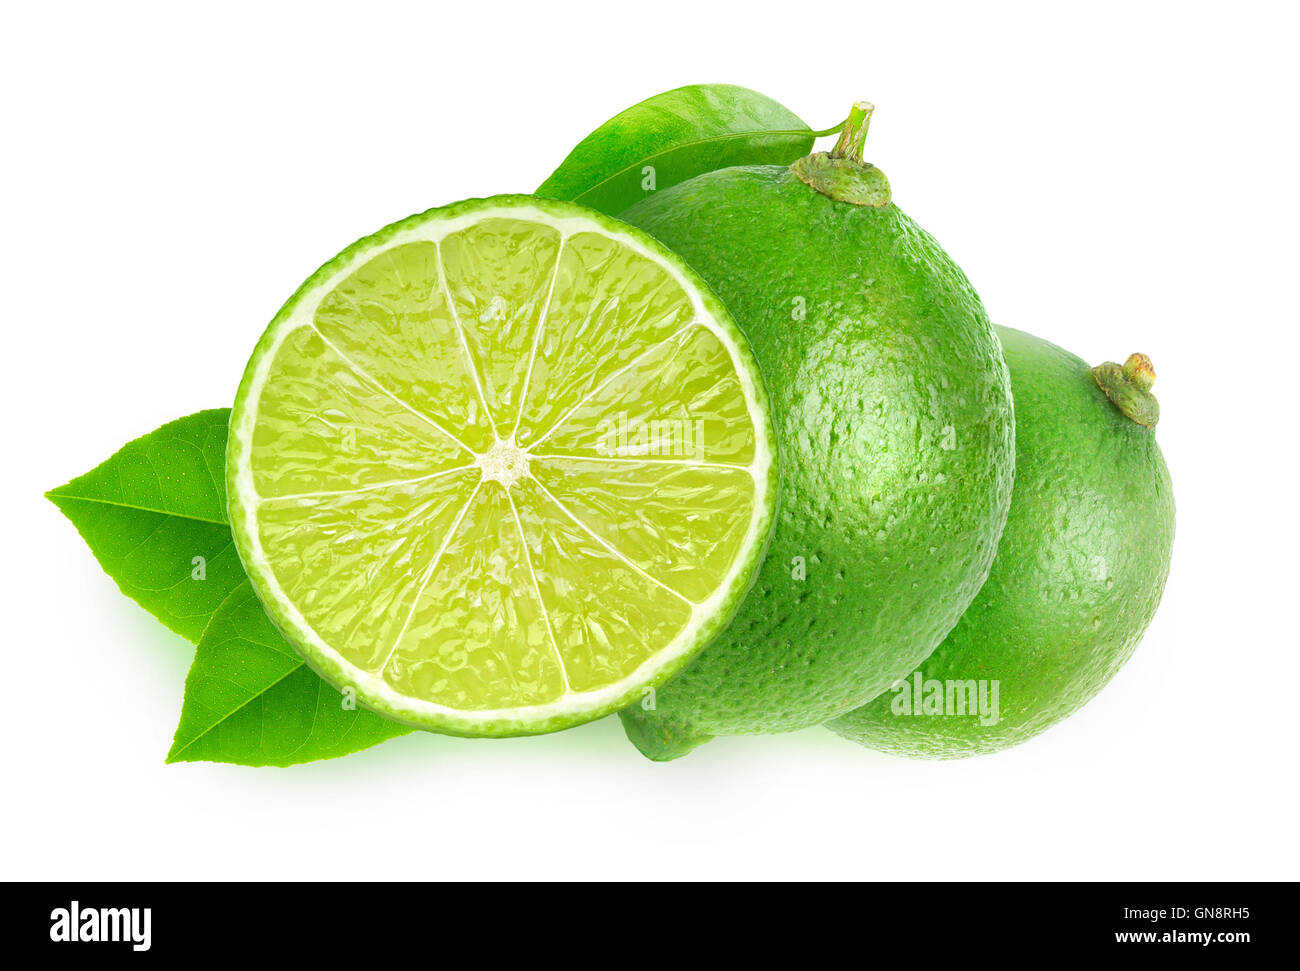 Isolated limes. Cut lime fruits isolated on white background with clipping path - Stock Image